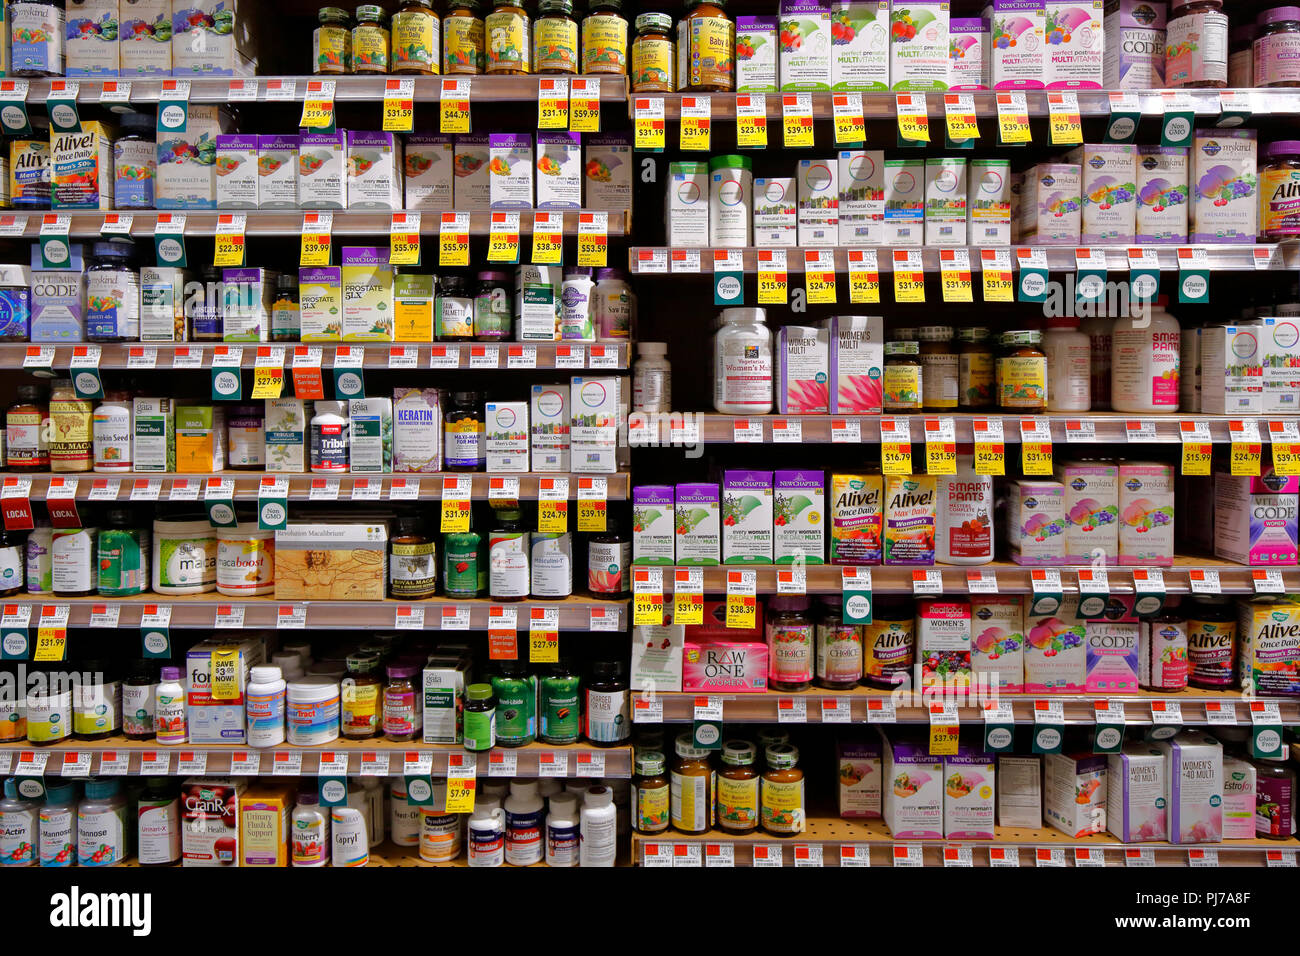 Vitamins, minerals, and nutritional supplements at a health foods store - Stock Image